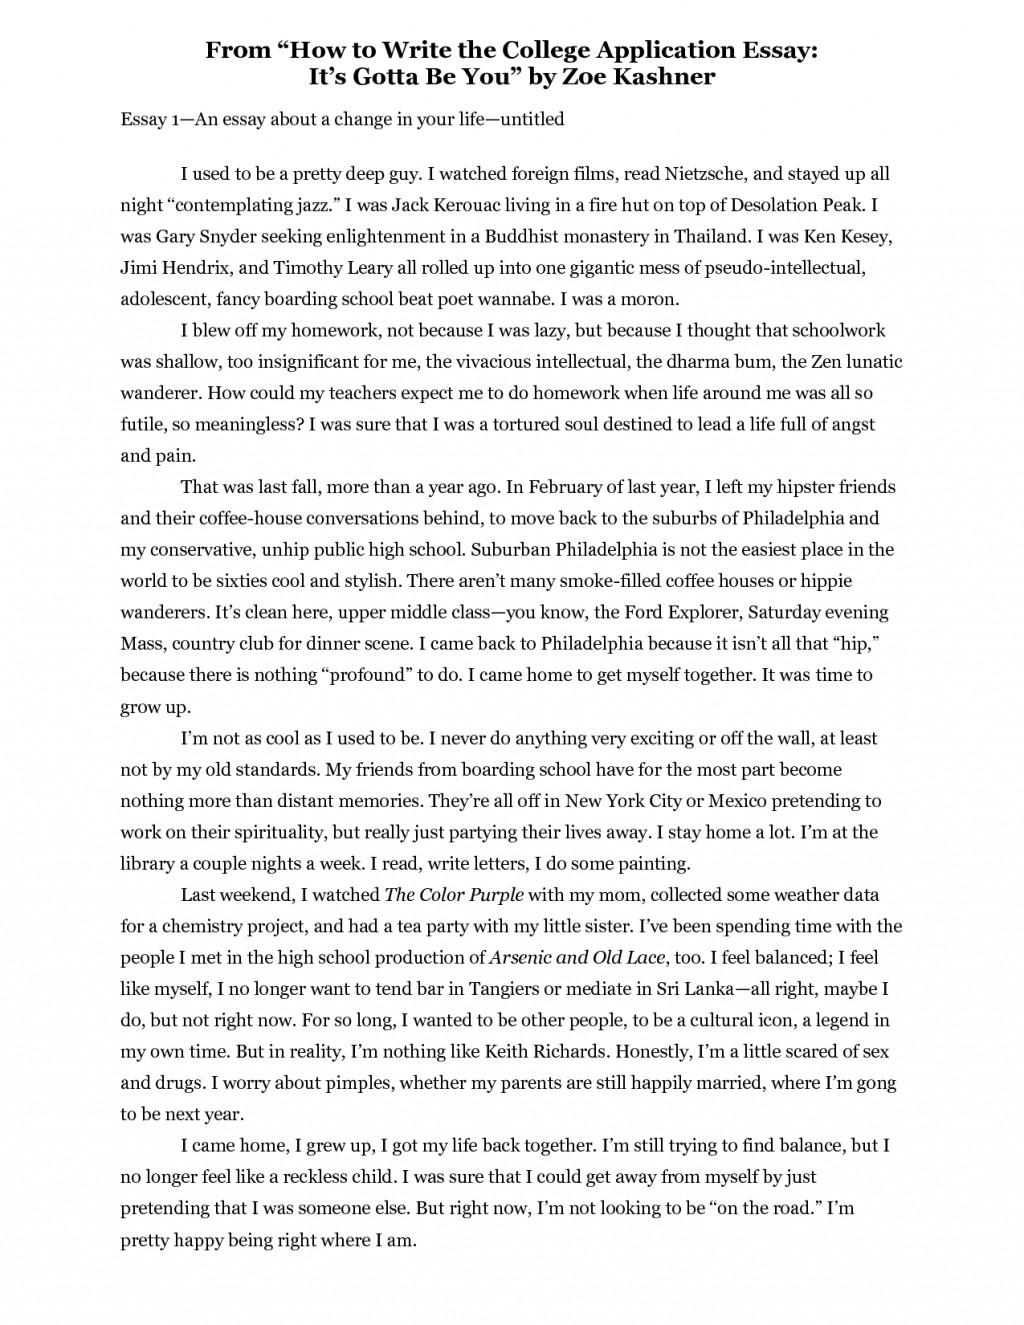 002 Oyt5kbffja How To Start An Essay About Myself Unique Off Yourself For College A Job Large